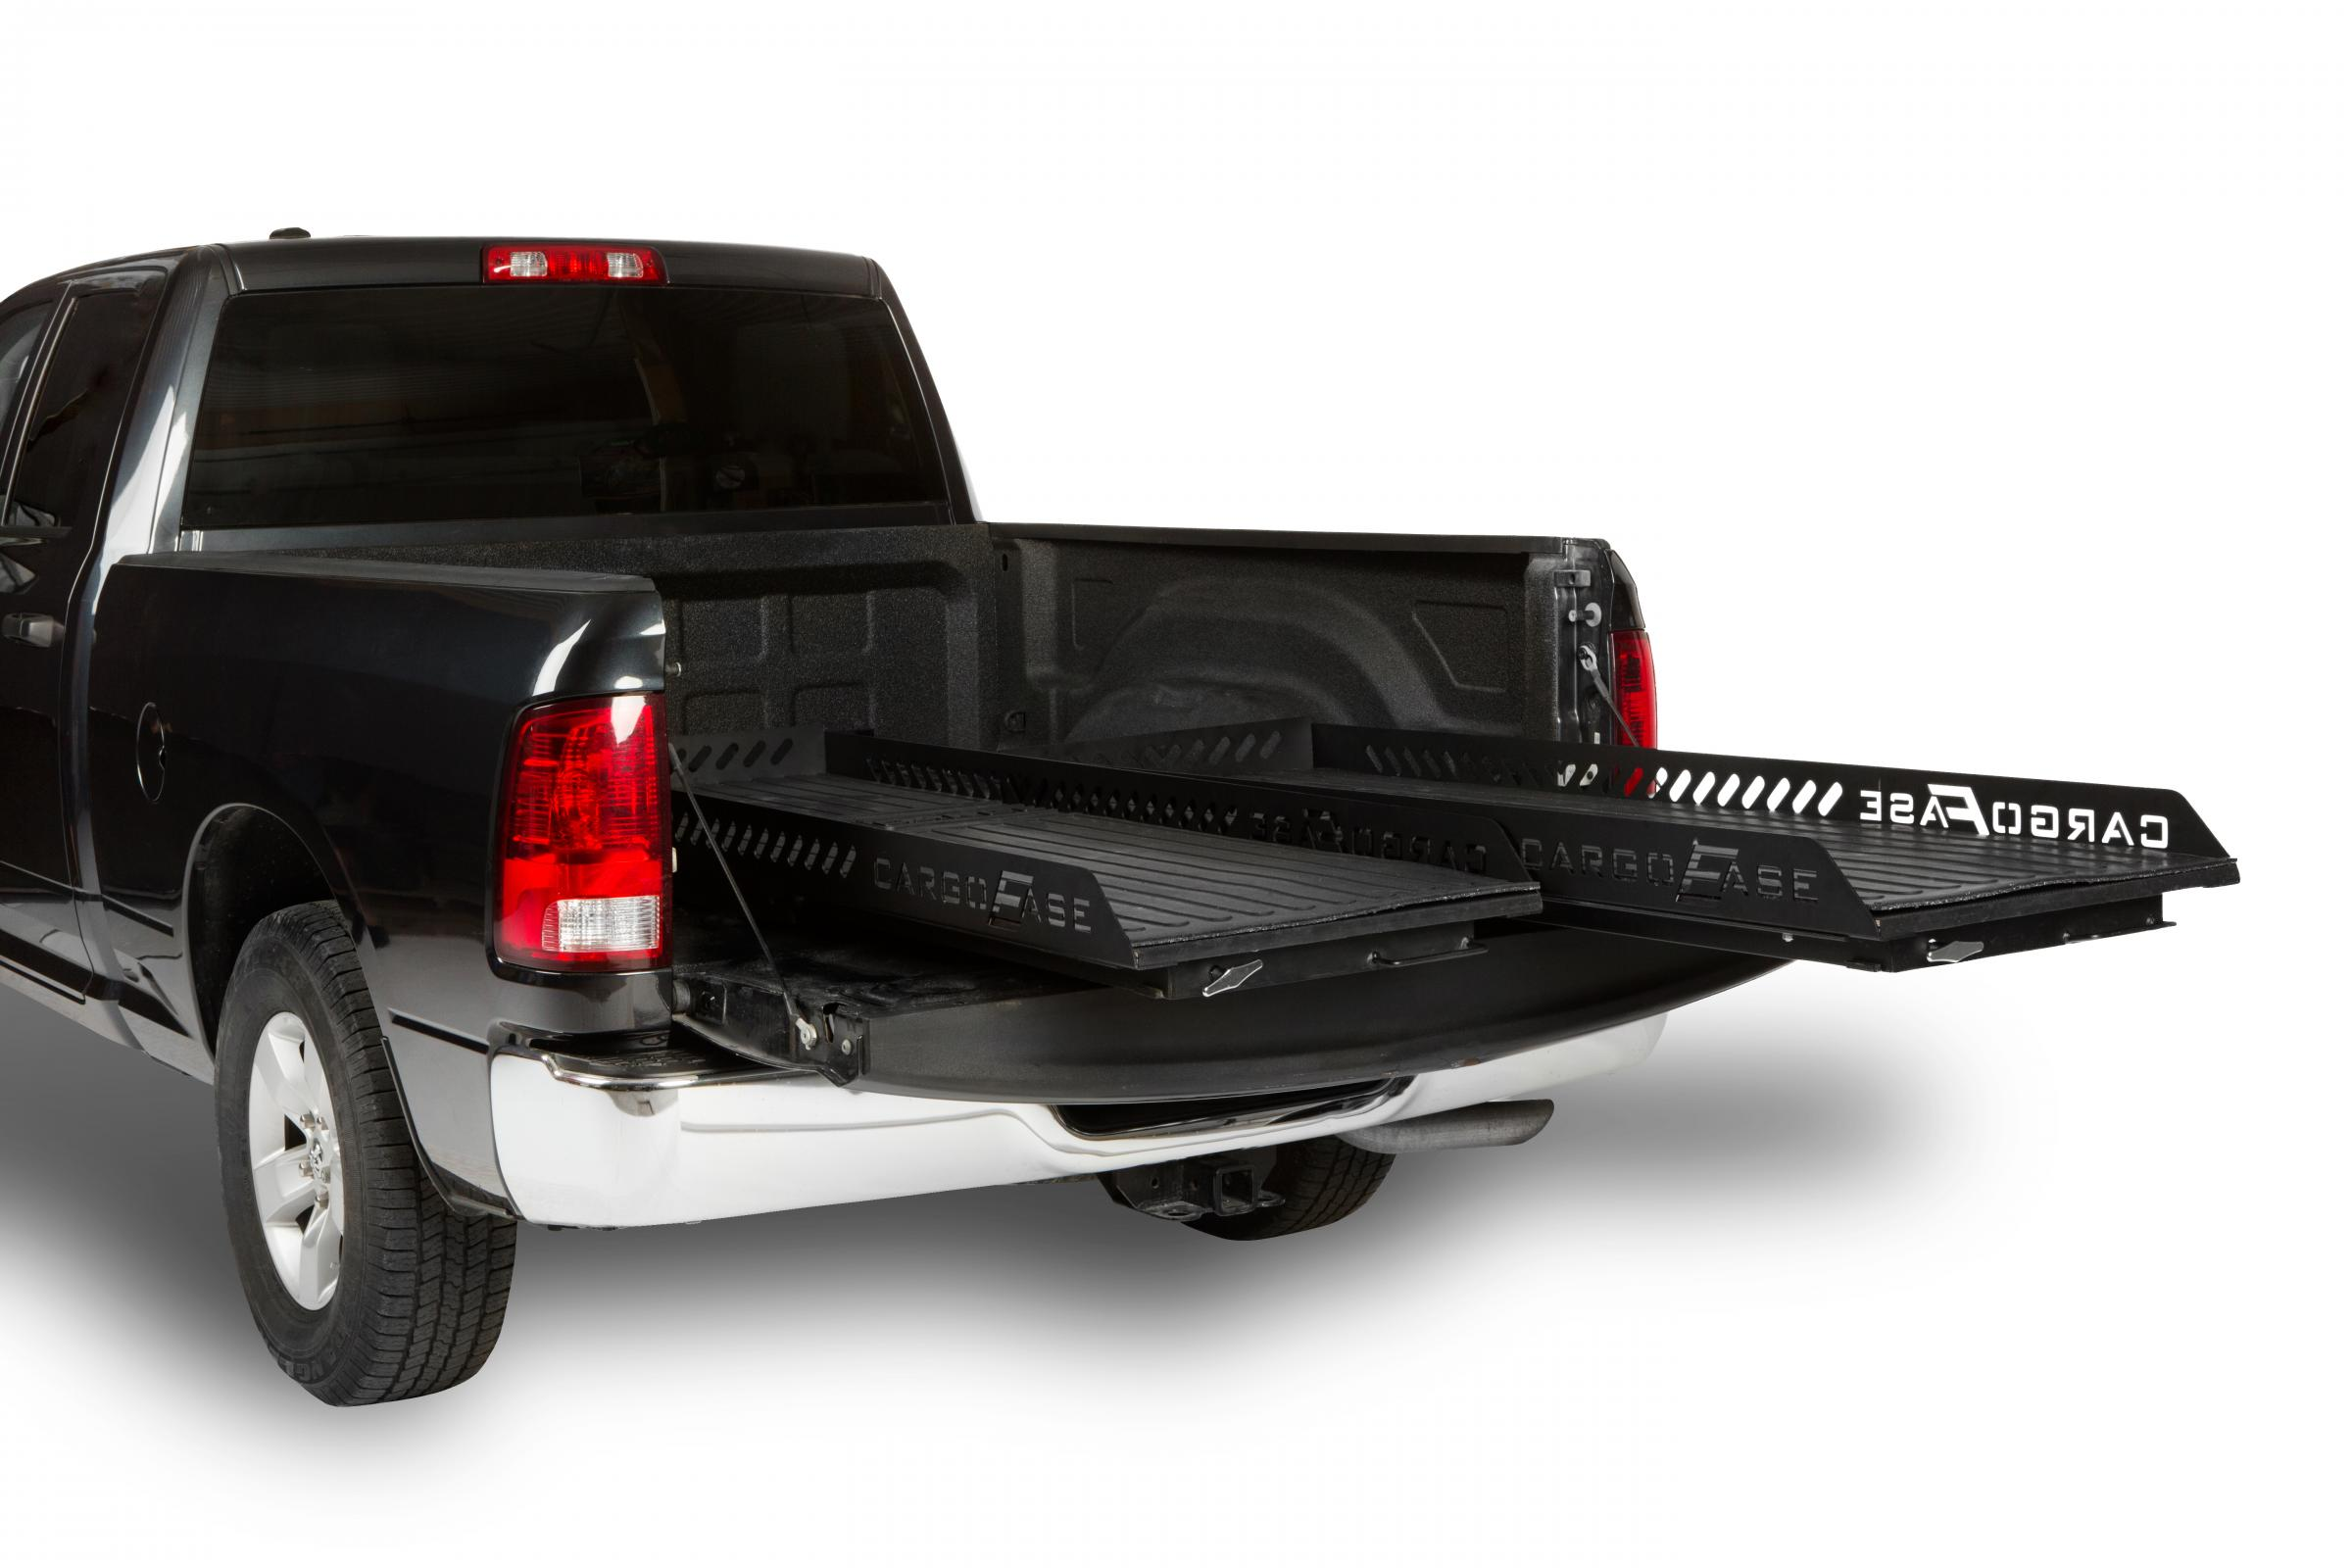 Cargo Ease Dual Slide Cargo Slide 1200 Lb Capacity (600 each side) 07-Pres Toyota Tundra Crew Max Short Bed